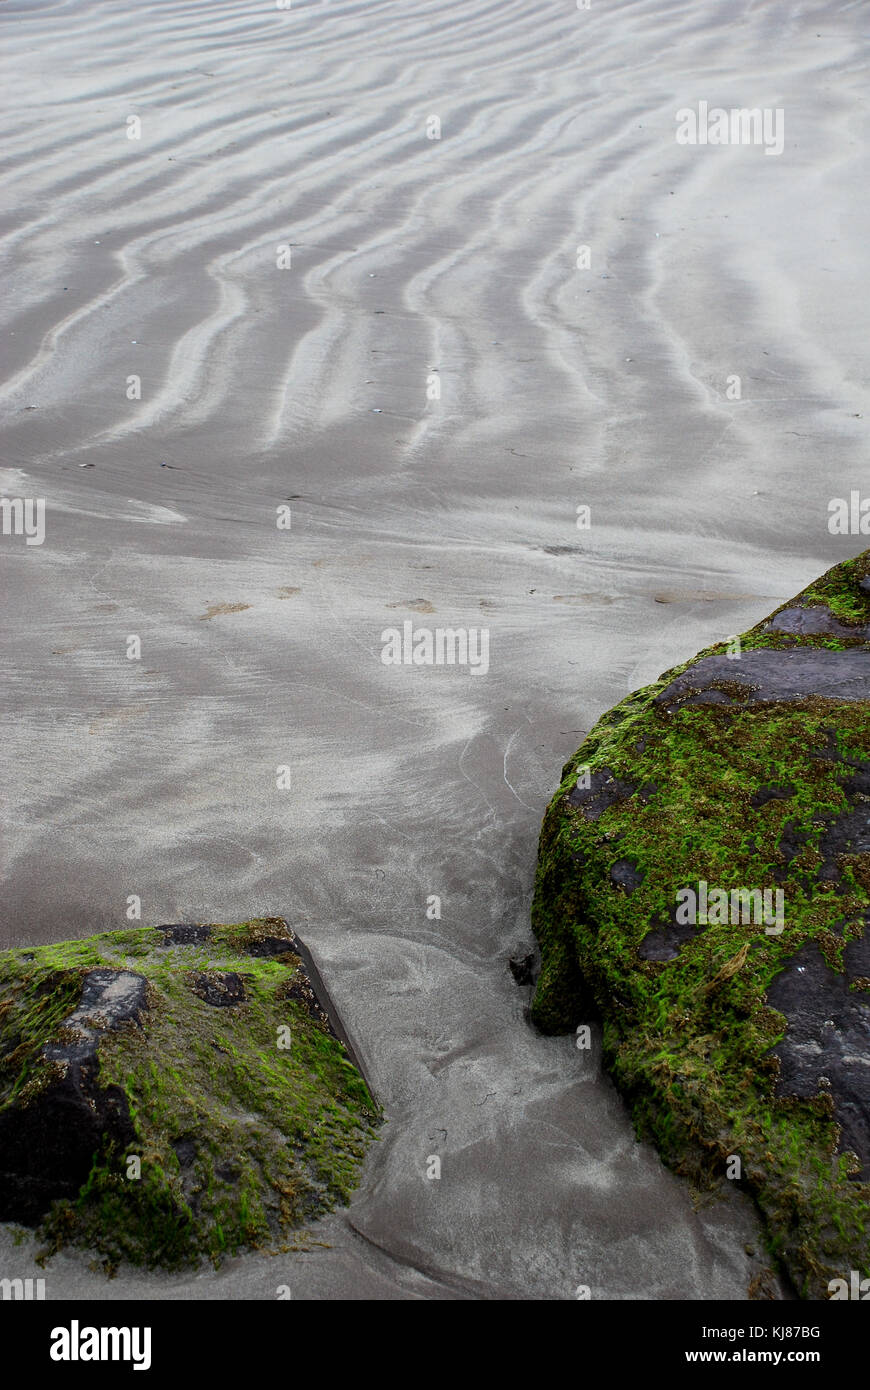 Inch Beach on Ireland's Dingle Peninsula - Stock Image